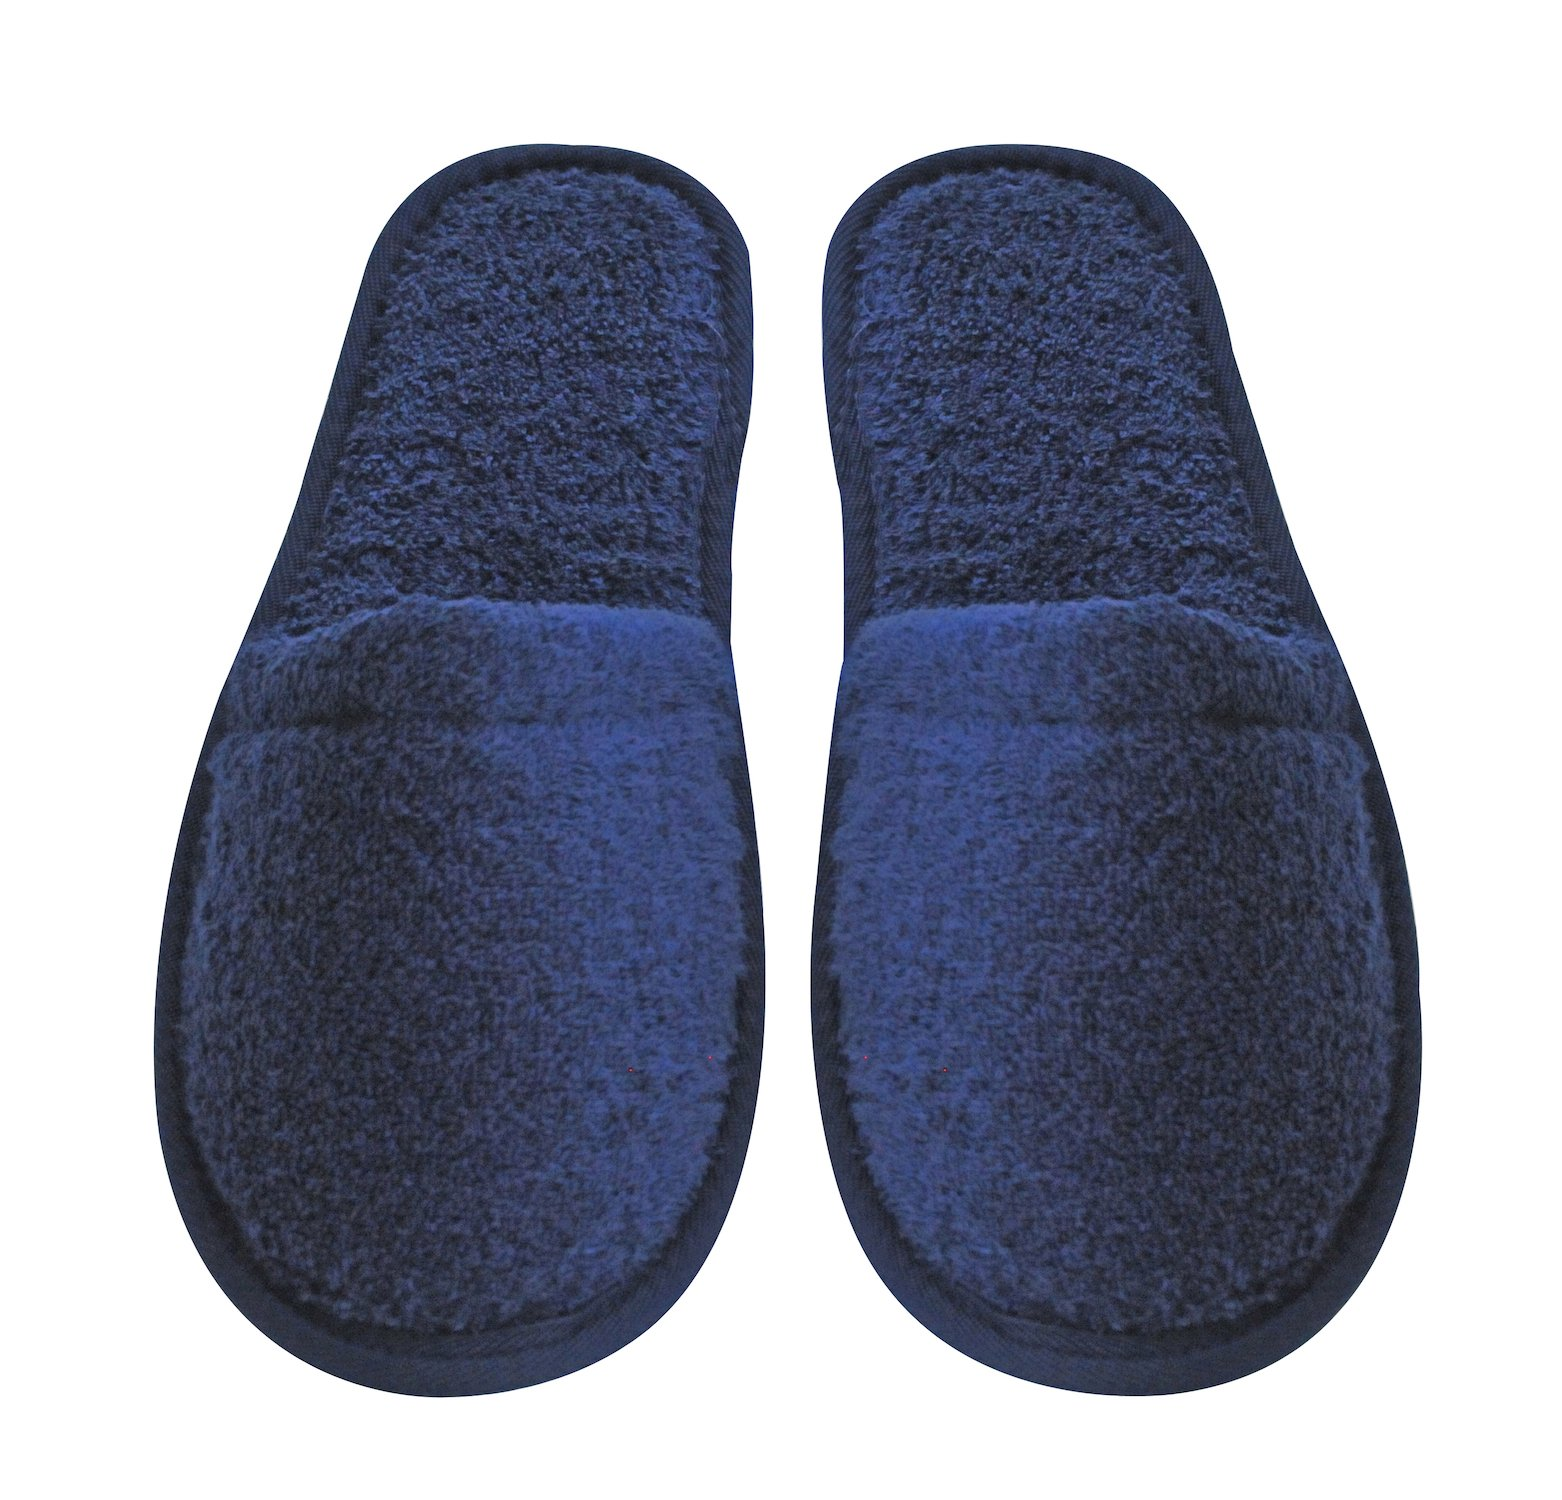 Arus Men's Turkish Terry Cotton Cloth Spa Slippers, One Size Fits Most, Navy Blue with Black Sole